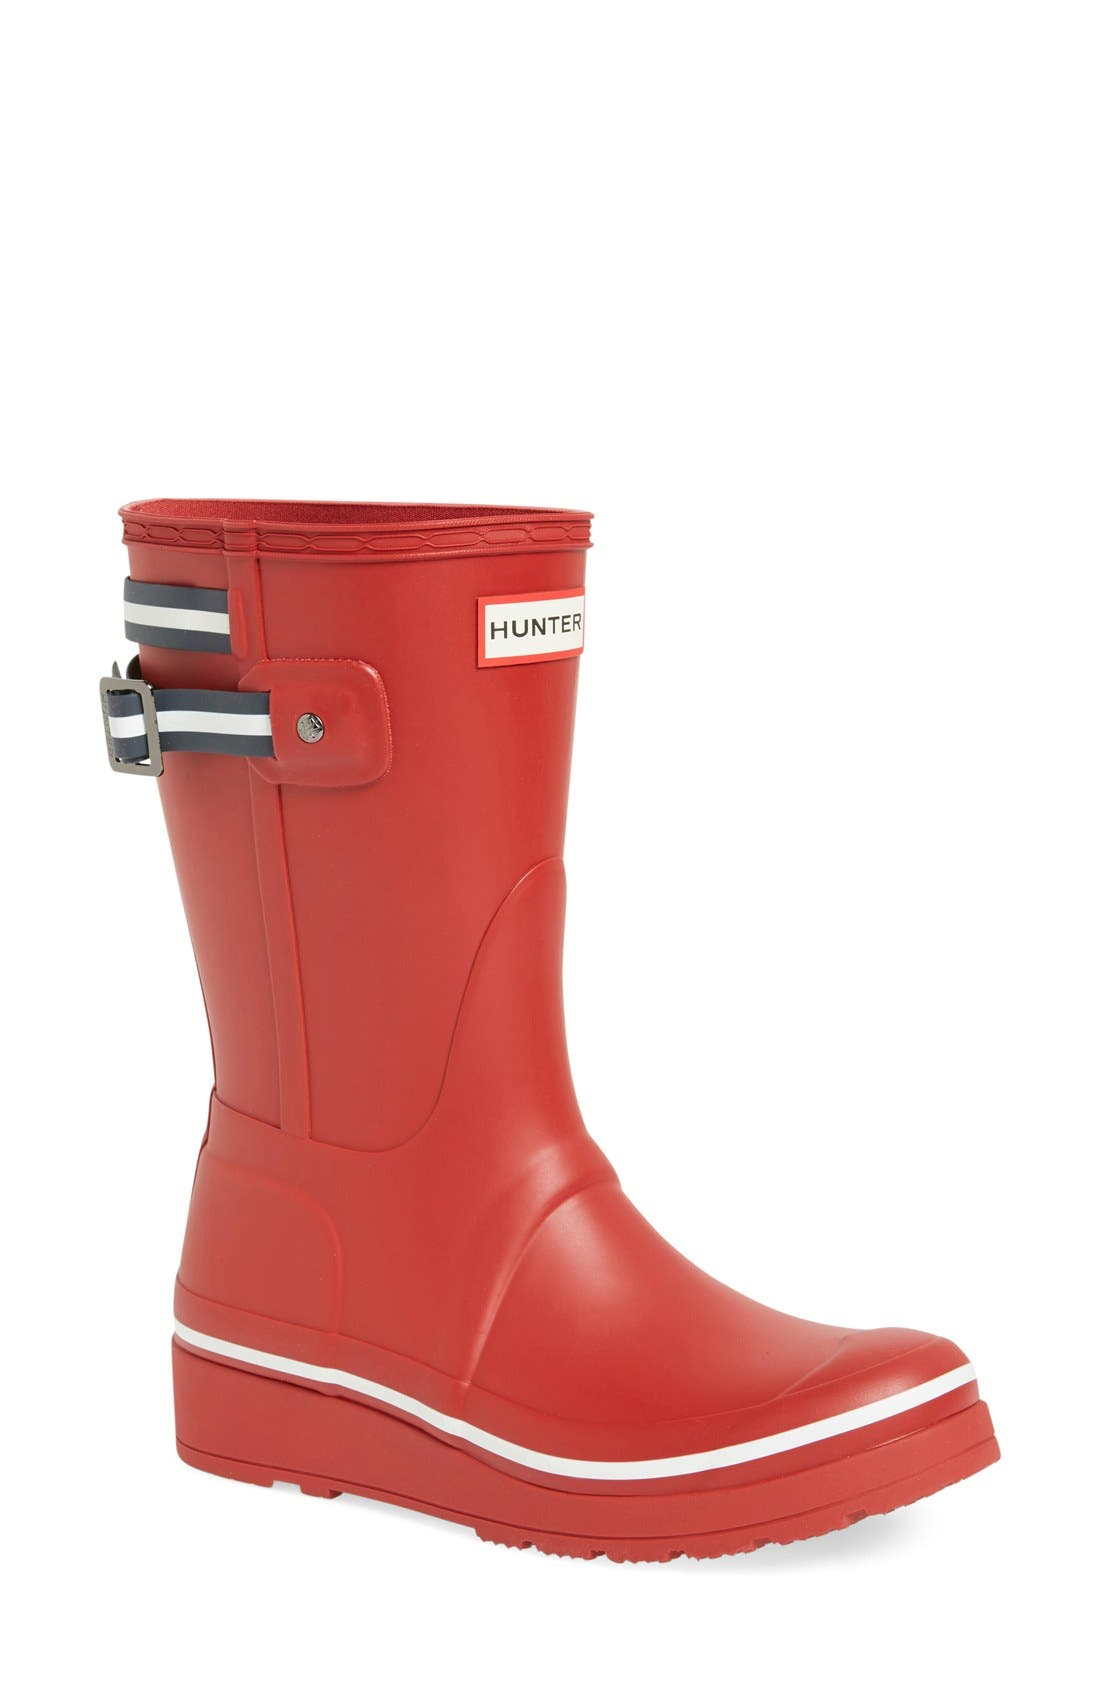 Main Image - Hunter 'Original Short' Wedge Rain Boot (Women)